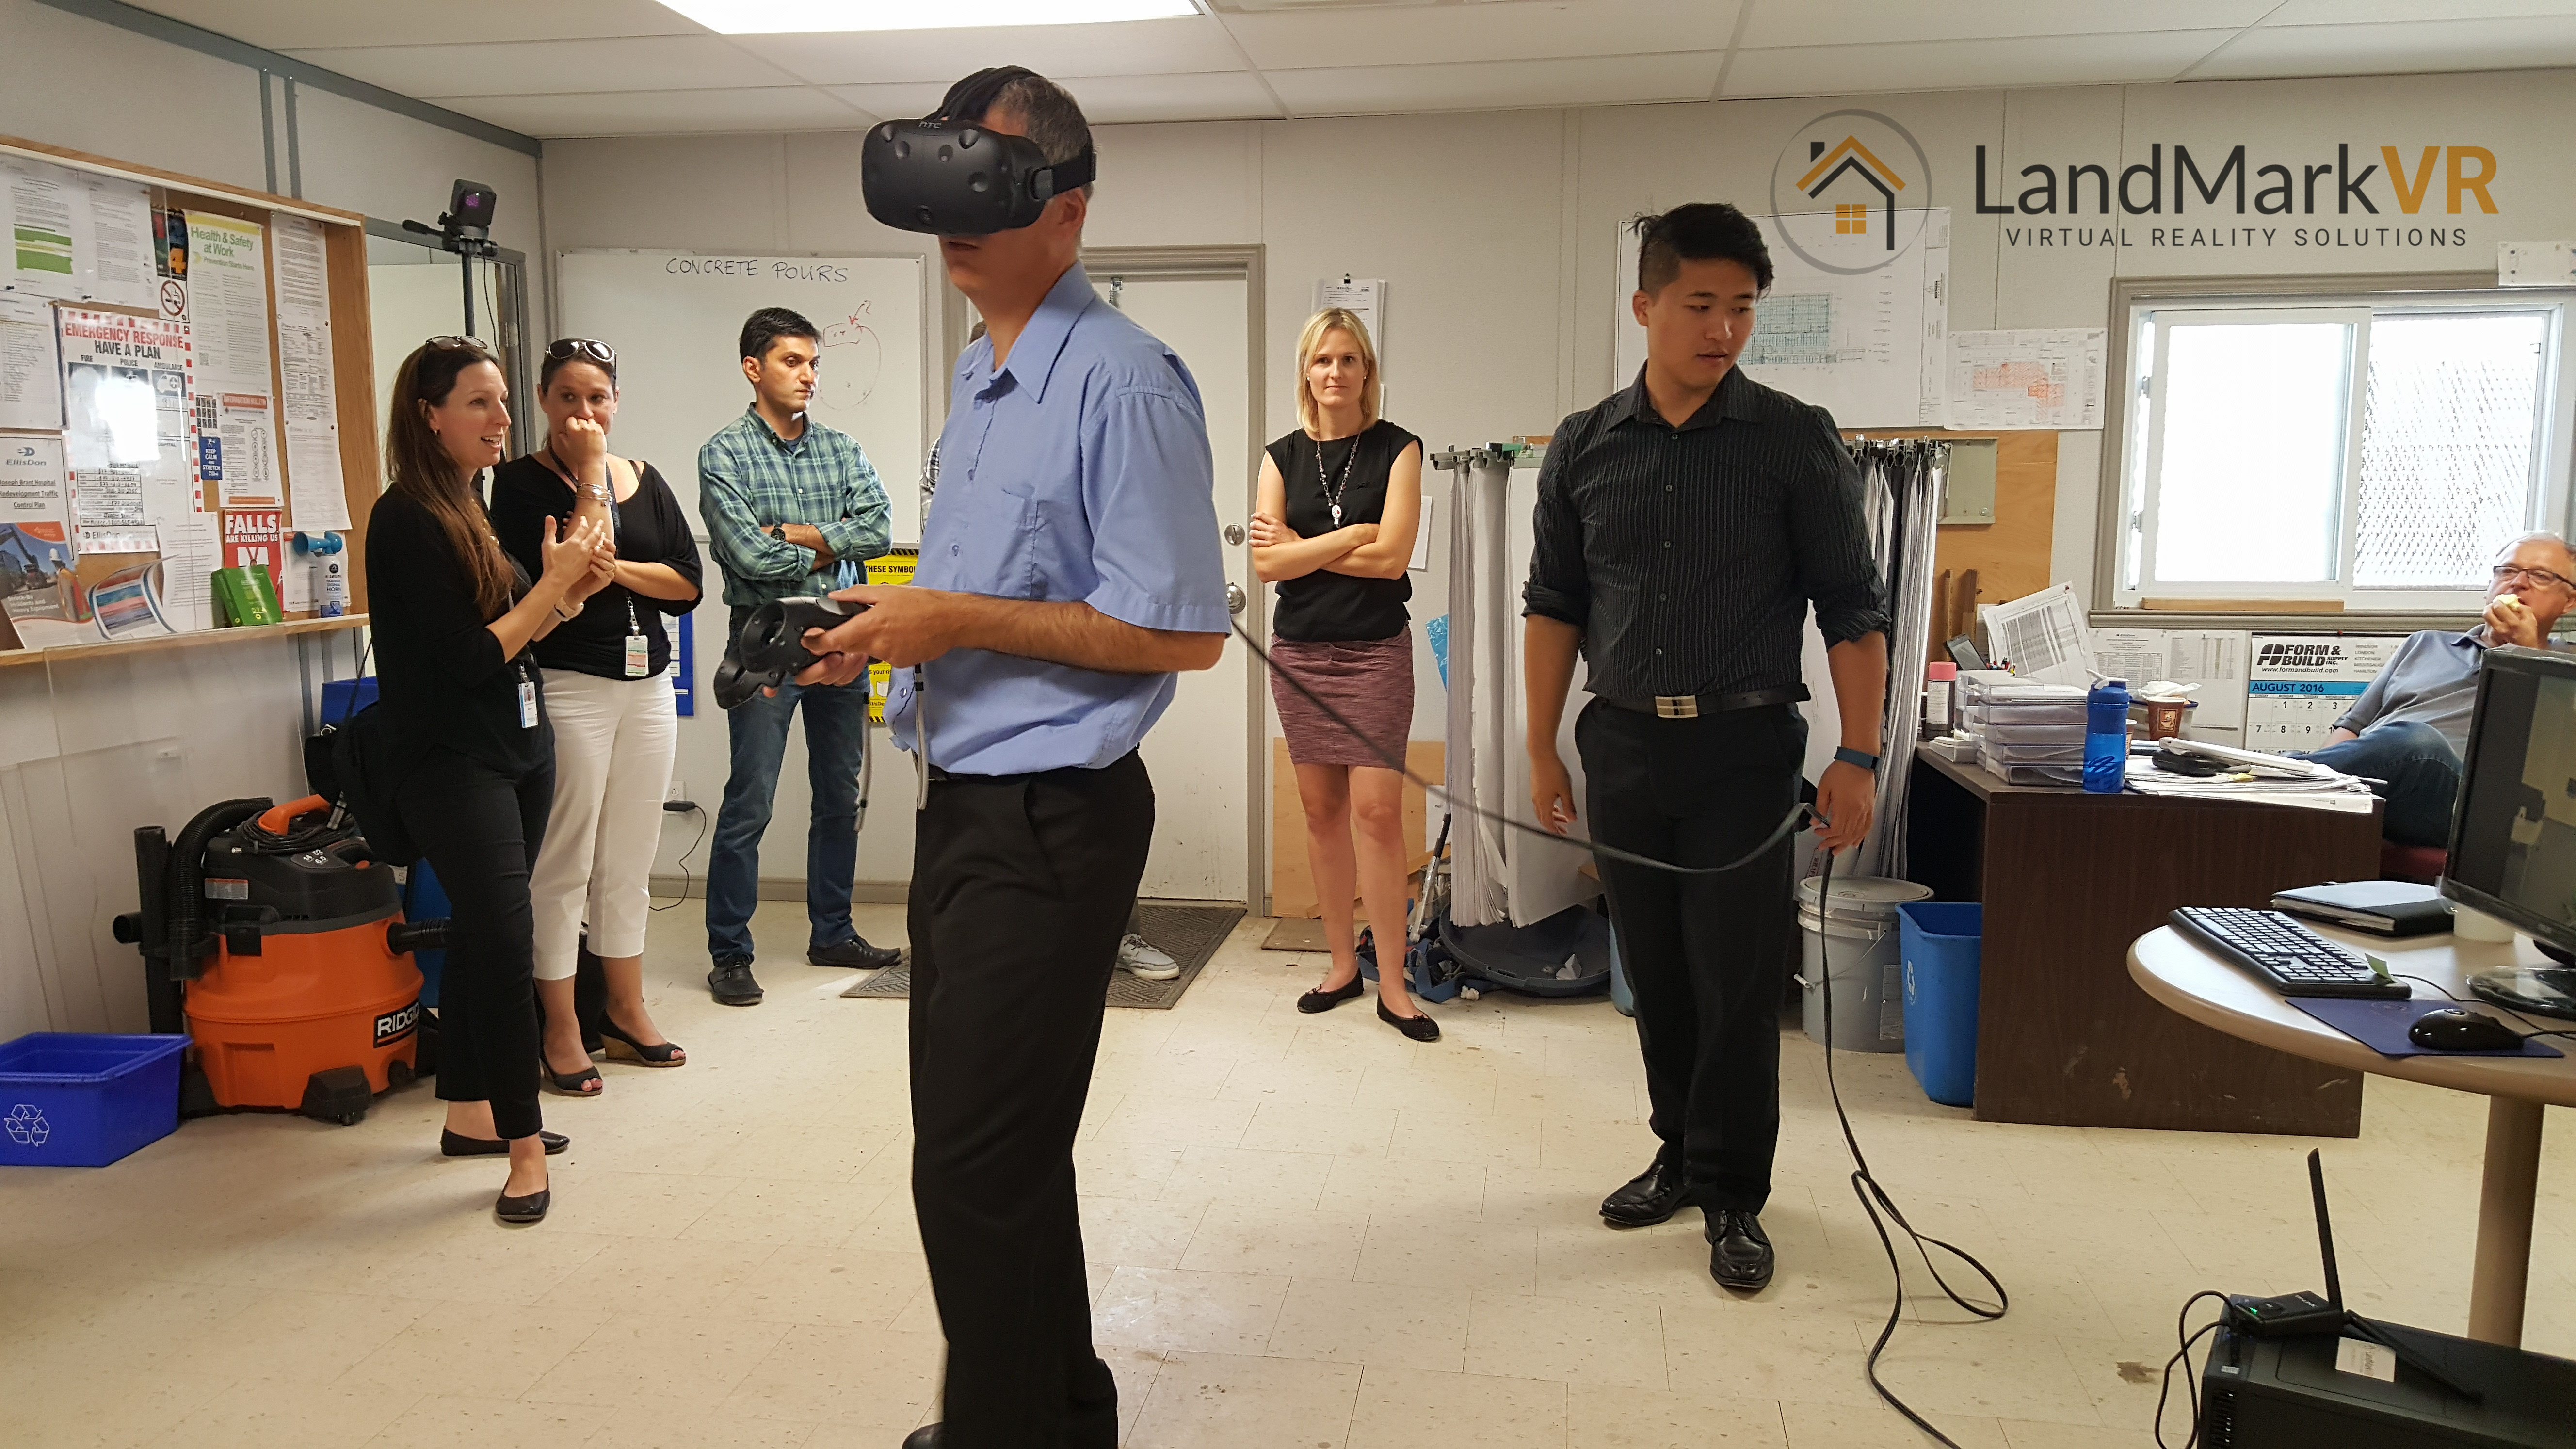 LandmarkVR wants its showrooms to be the industry standard